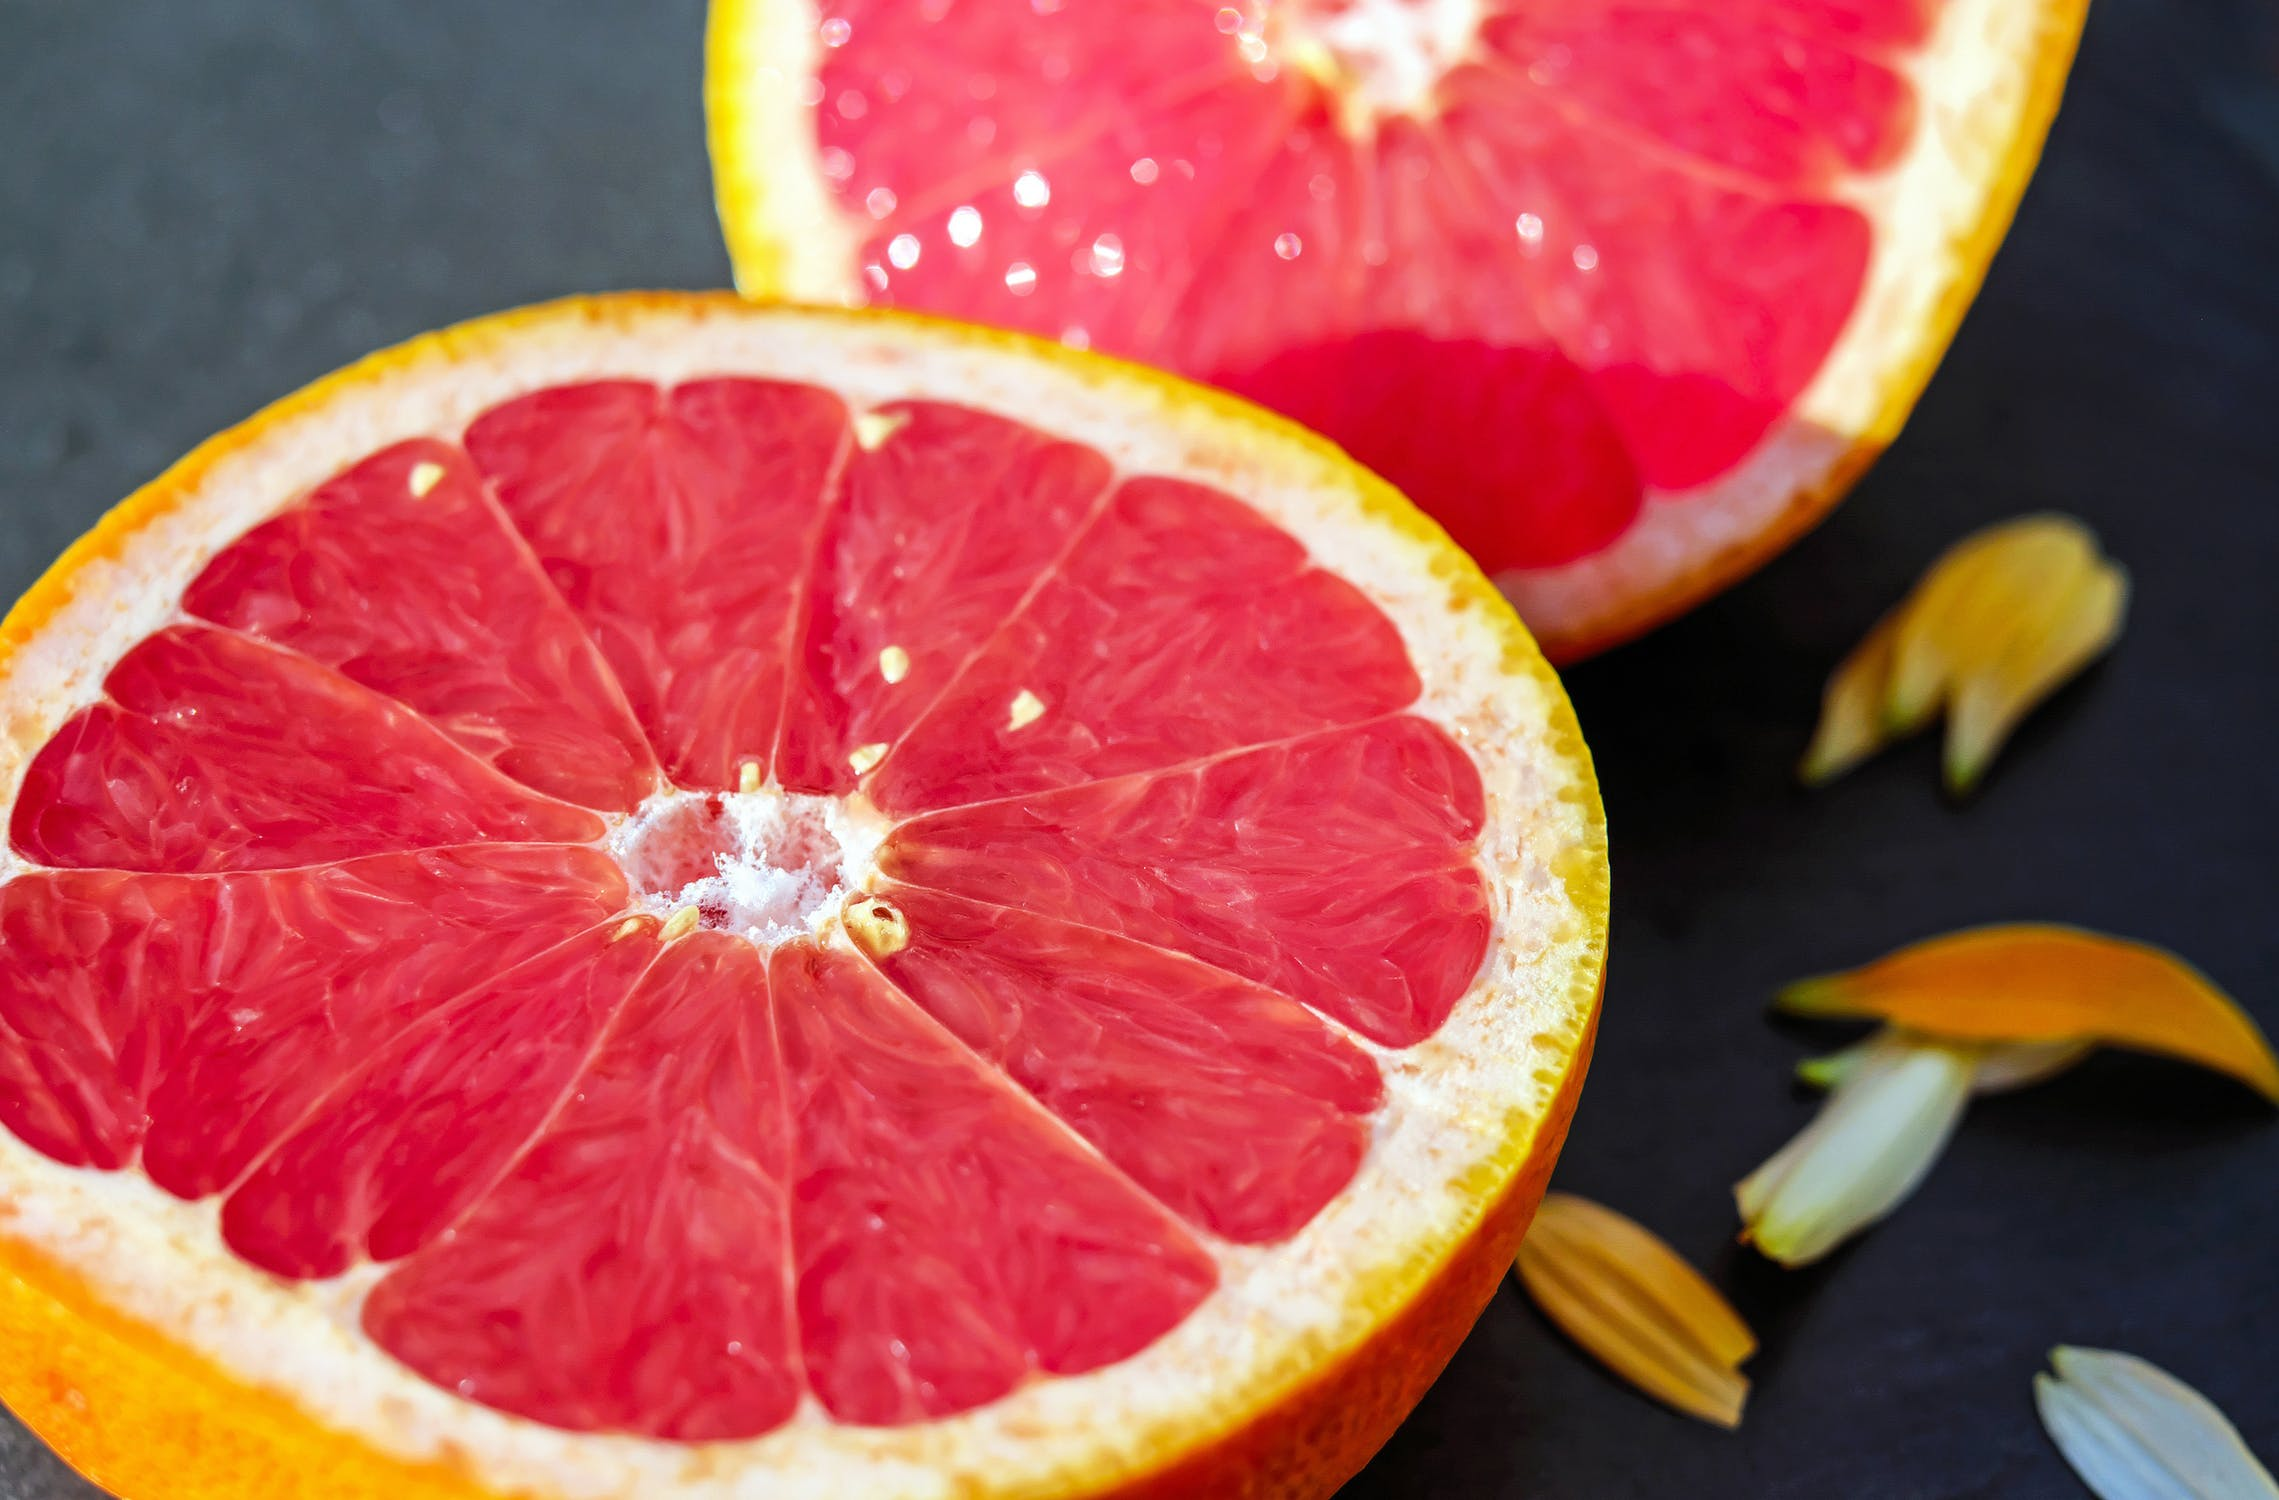 Superfood Grapefruit